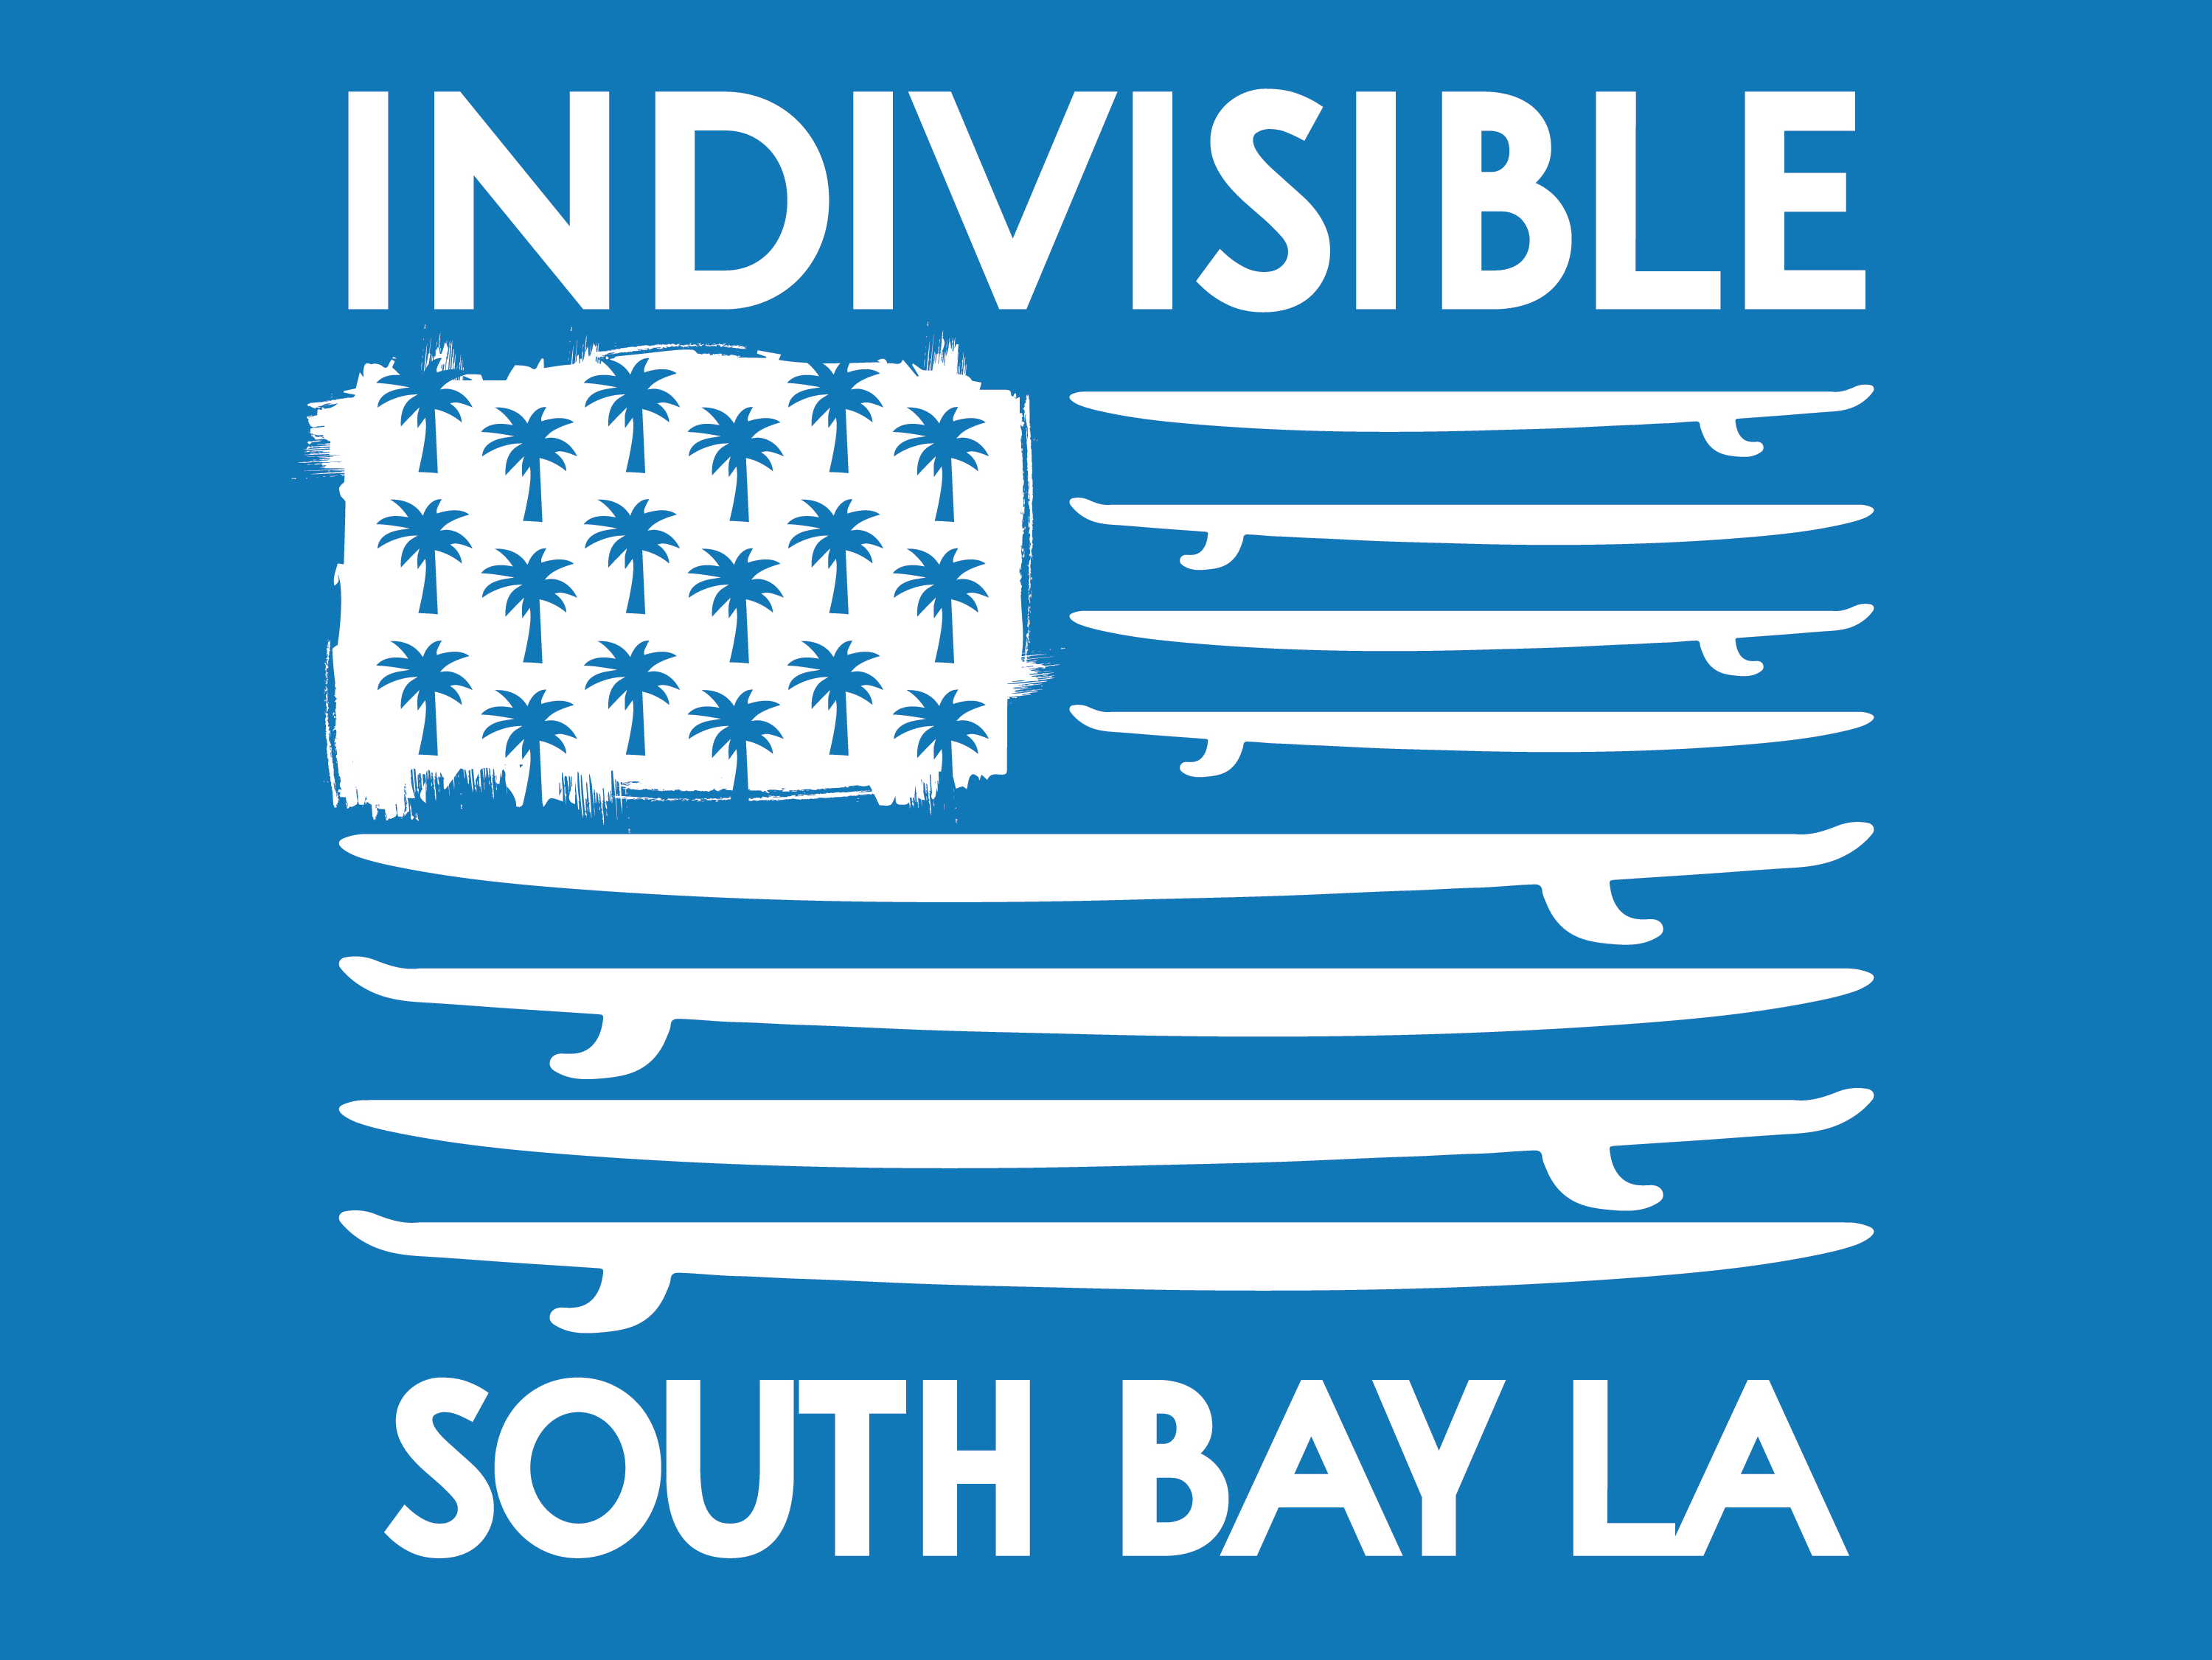 Indivisible South Bay LA